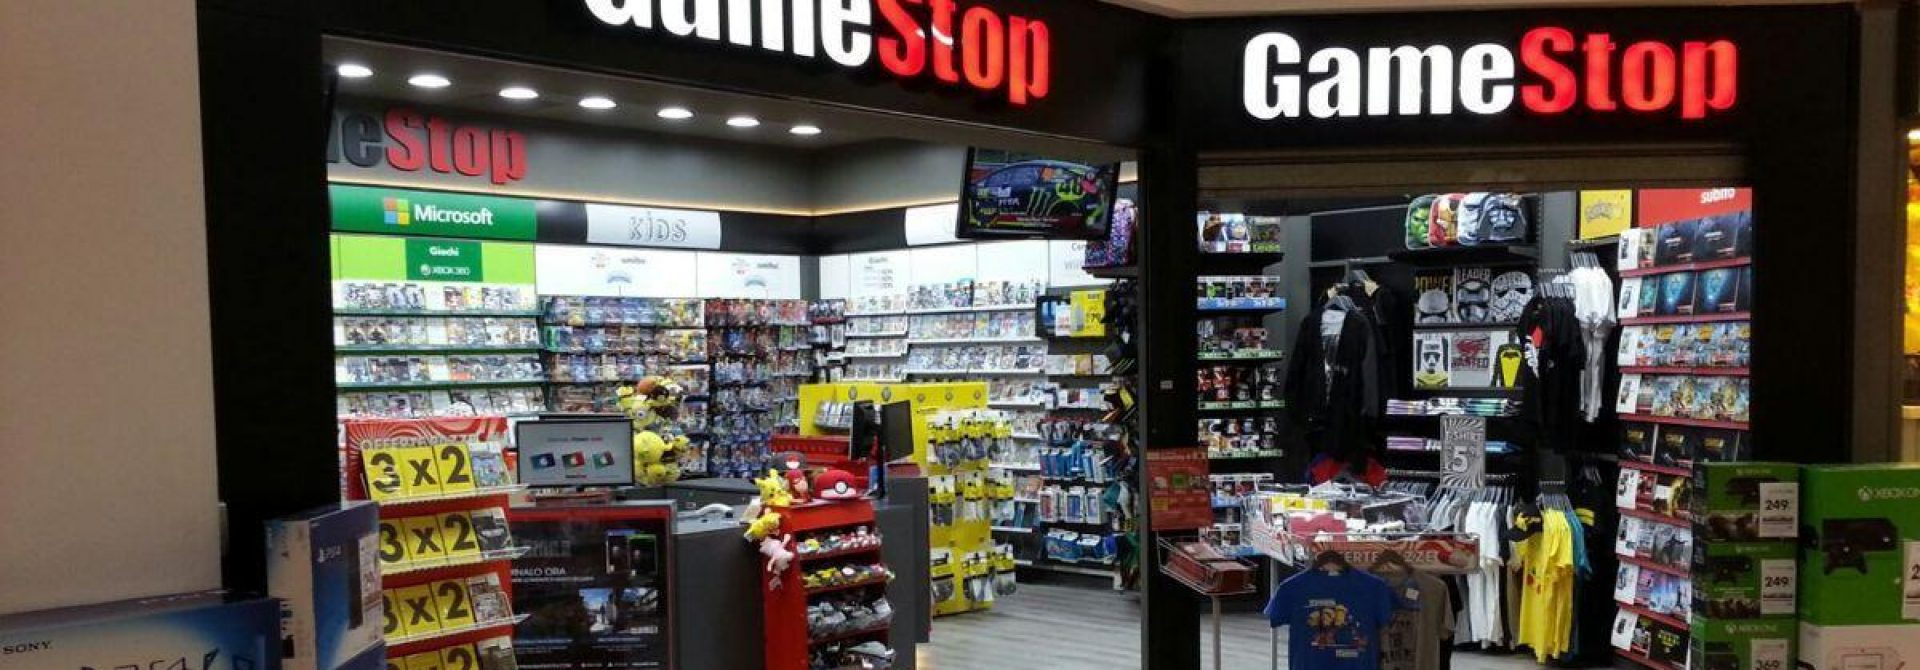 GameStop Isn't Dead Yet, But It's Getting There